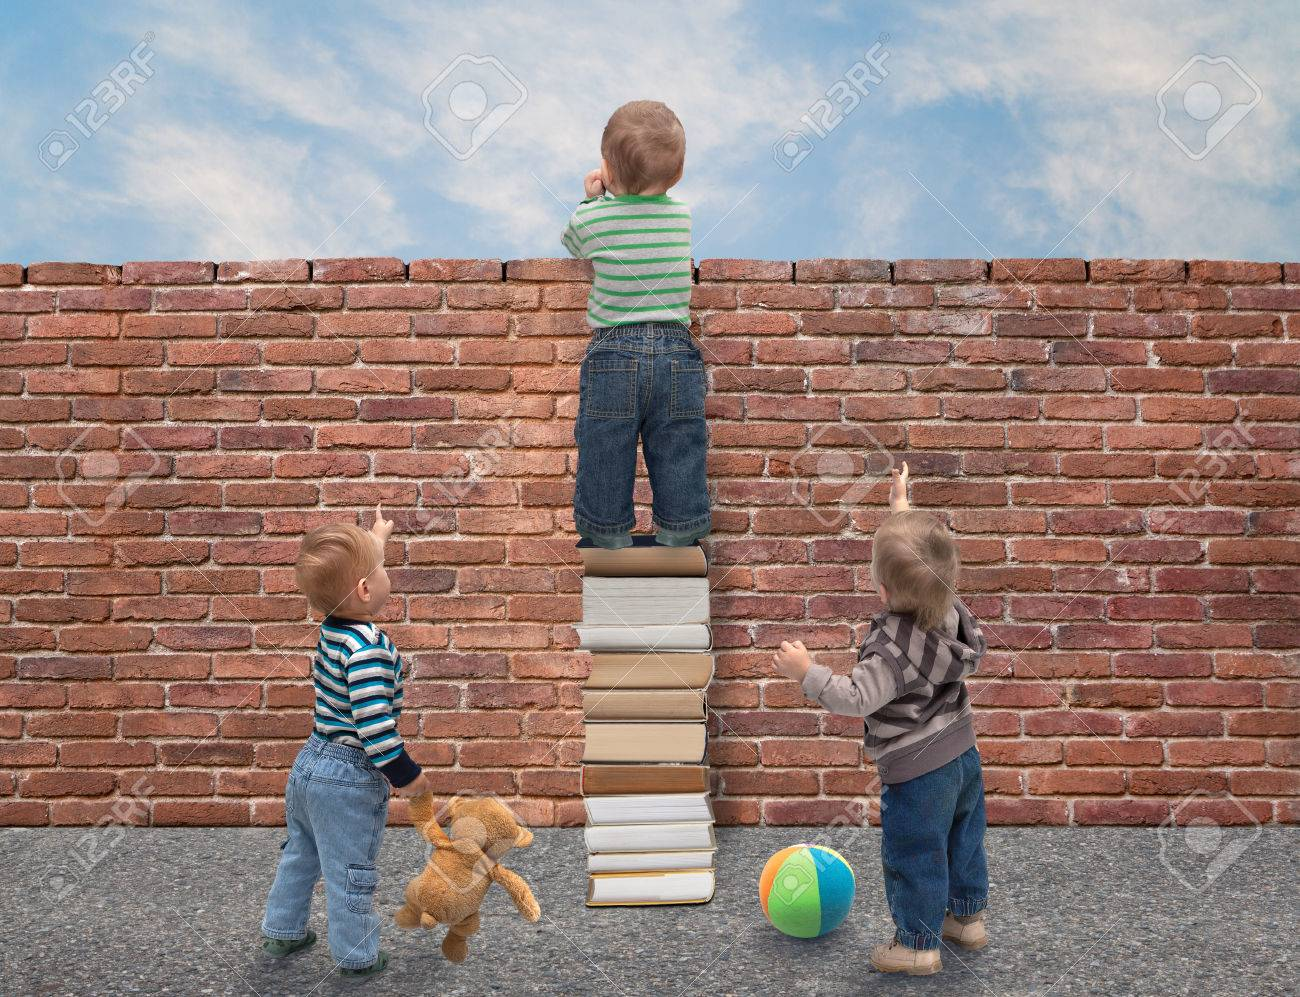 children perceive behind a wall of knowledge Stock Photo - 39091076